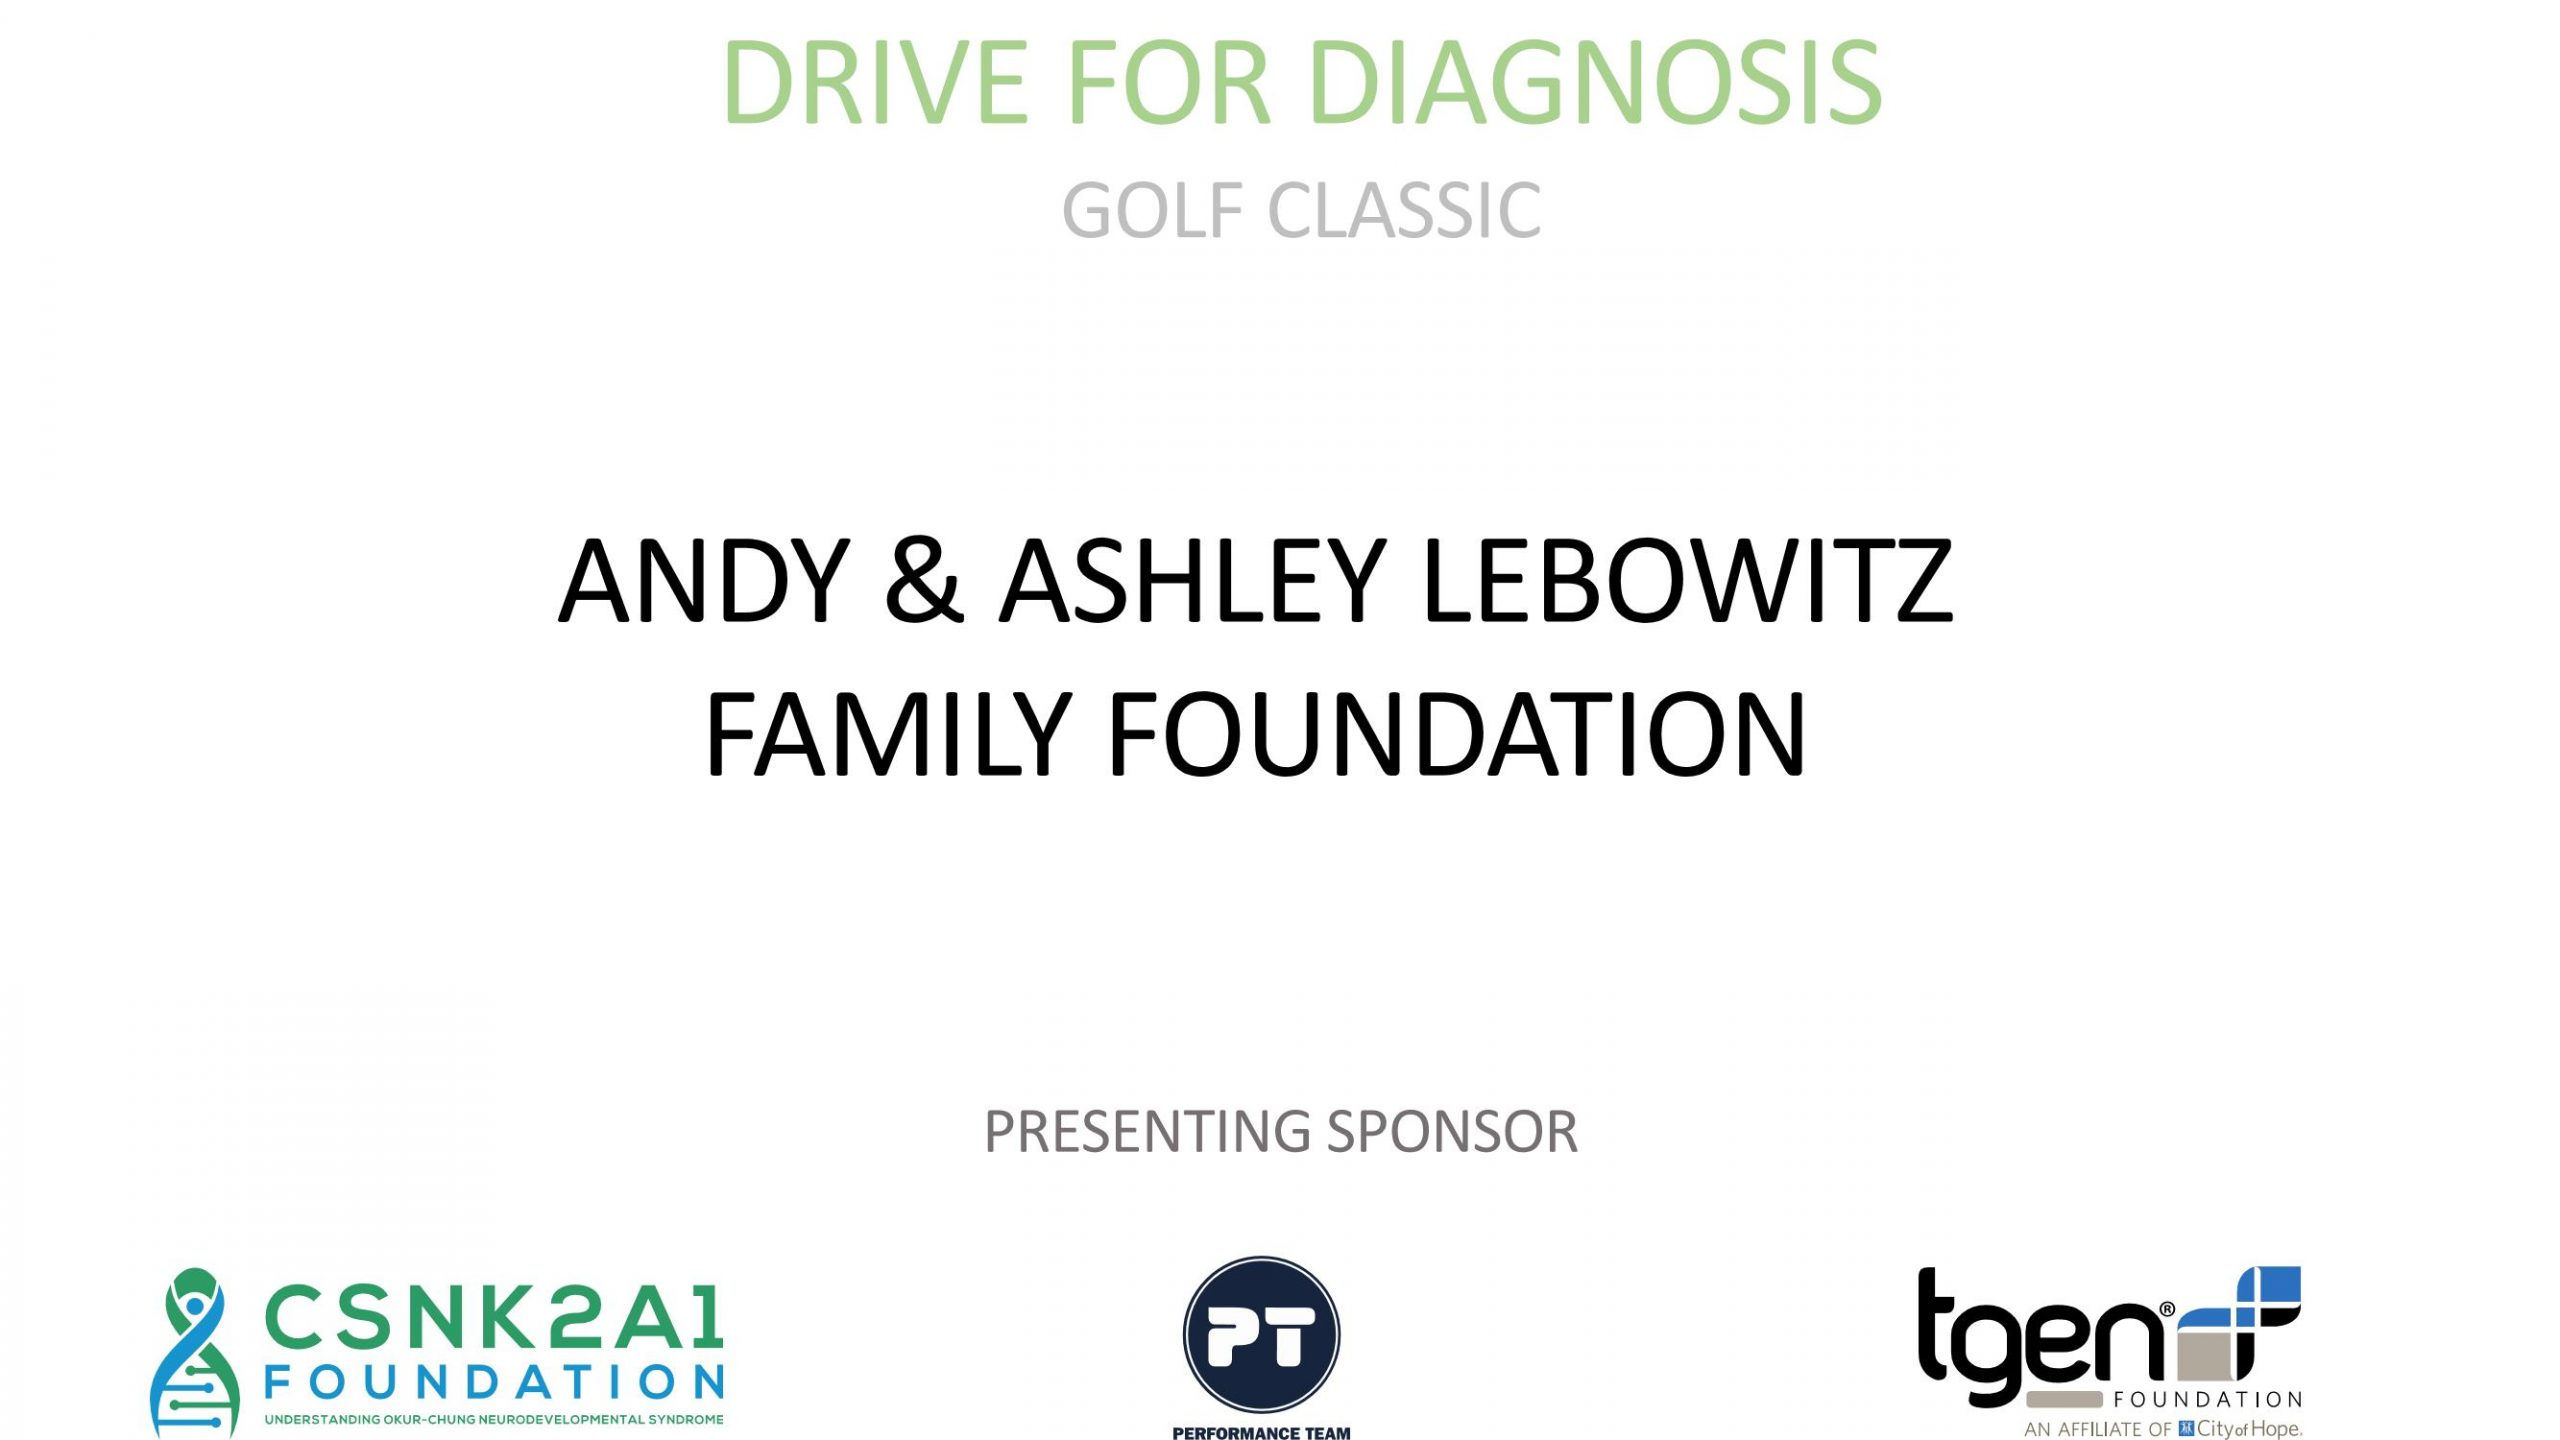 Presenting Sponsor - Andy & Ashley Lebowitz Family Foundation